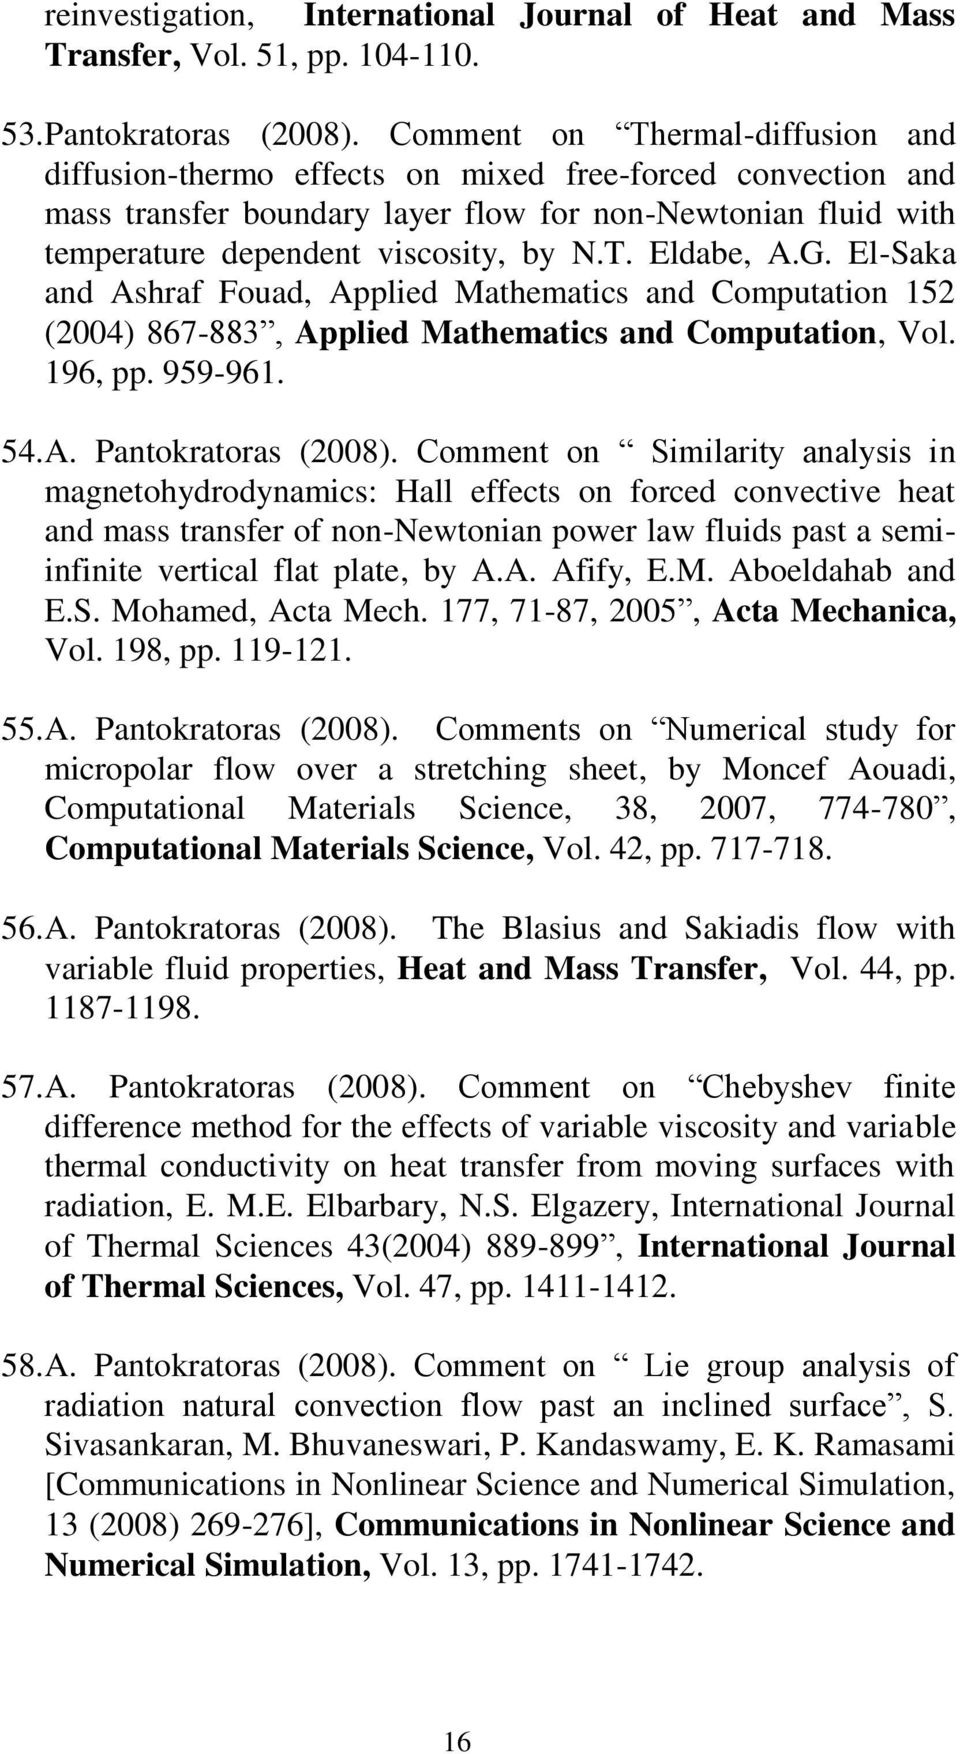 G. El-Saka and Ashraf Fouad, Applied Mathematics and Computation 152 (2004) 867-883, Applied Mathematics and Computation, Vol. 196, pp. 959-961. 54. A. Pantokratoras (2008).